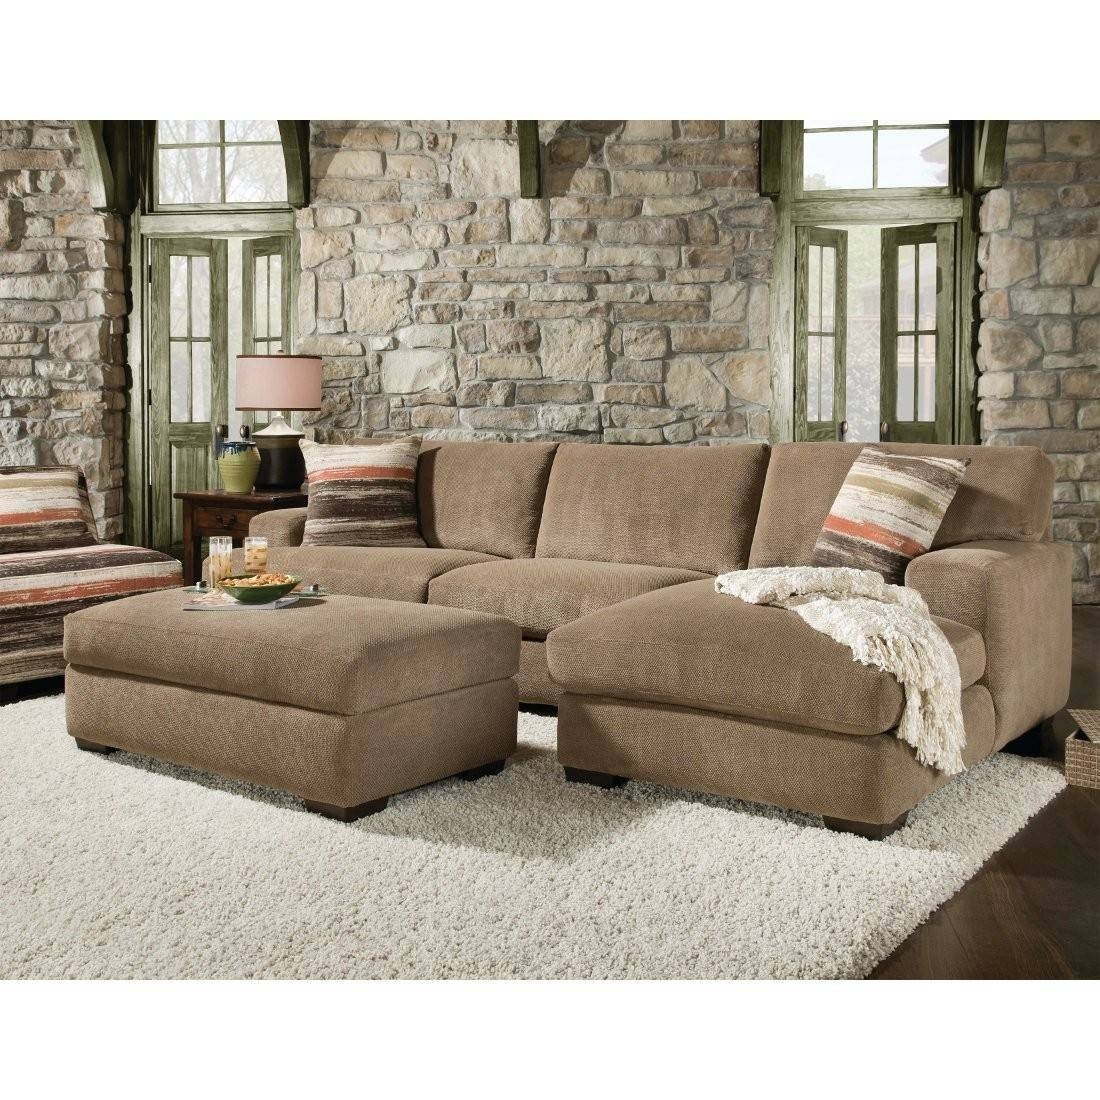 Sofas Center : Cozy Sectional Sofa With Chaise And Ottoman About regarding Down Sectional Sofa (Image 16 of 25)